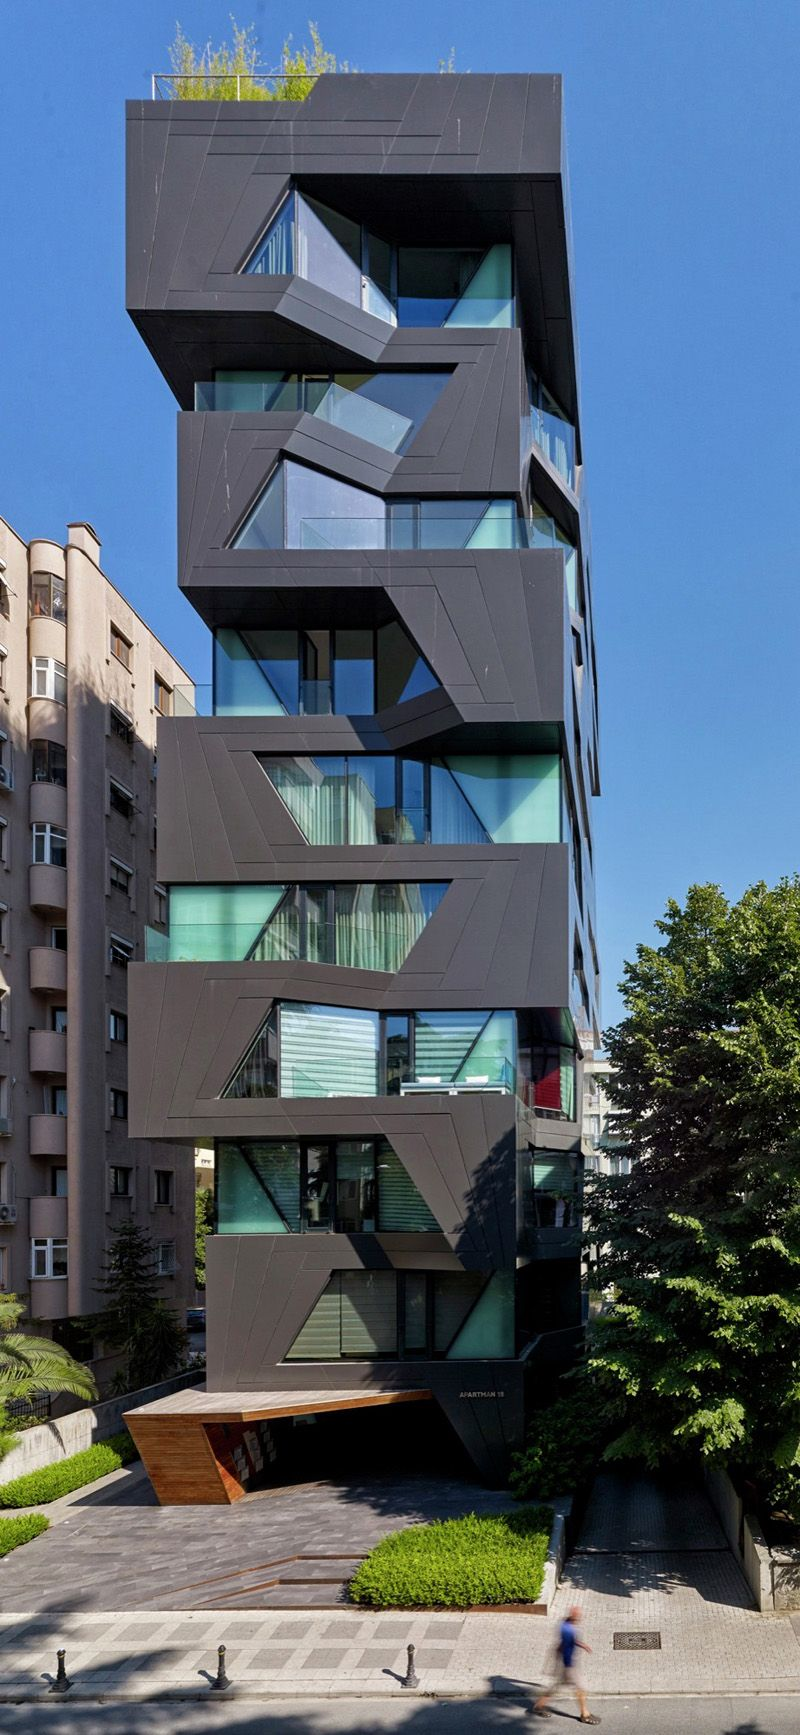 Exterior: The Exterior Of This Apartment Building Is A Break From